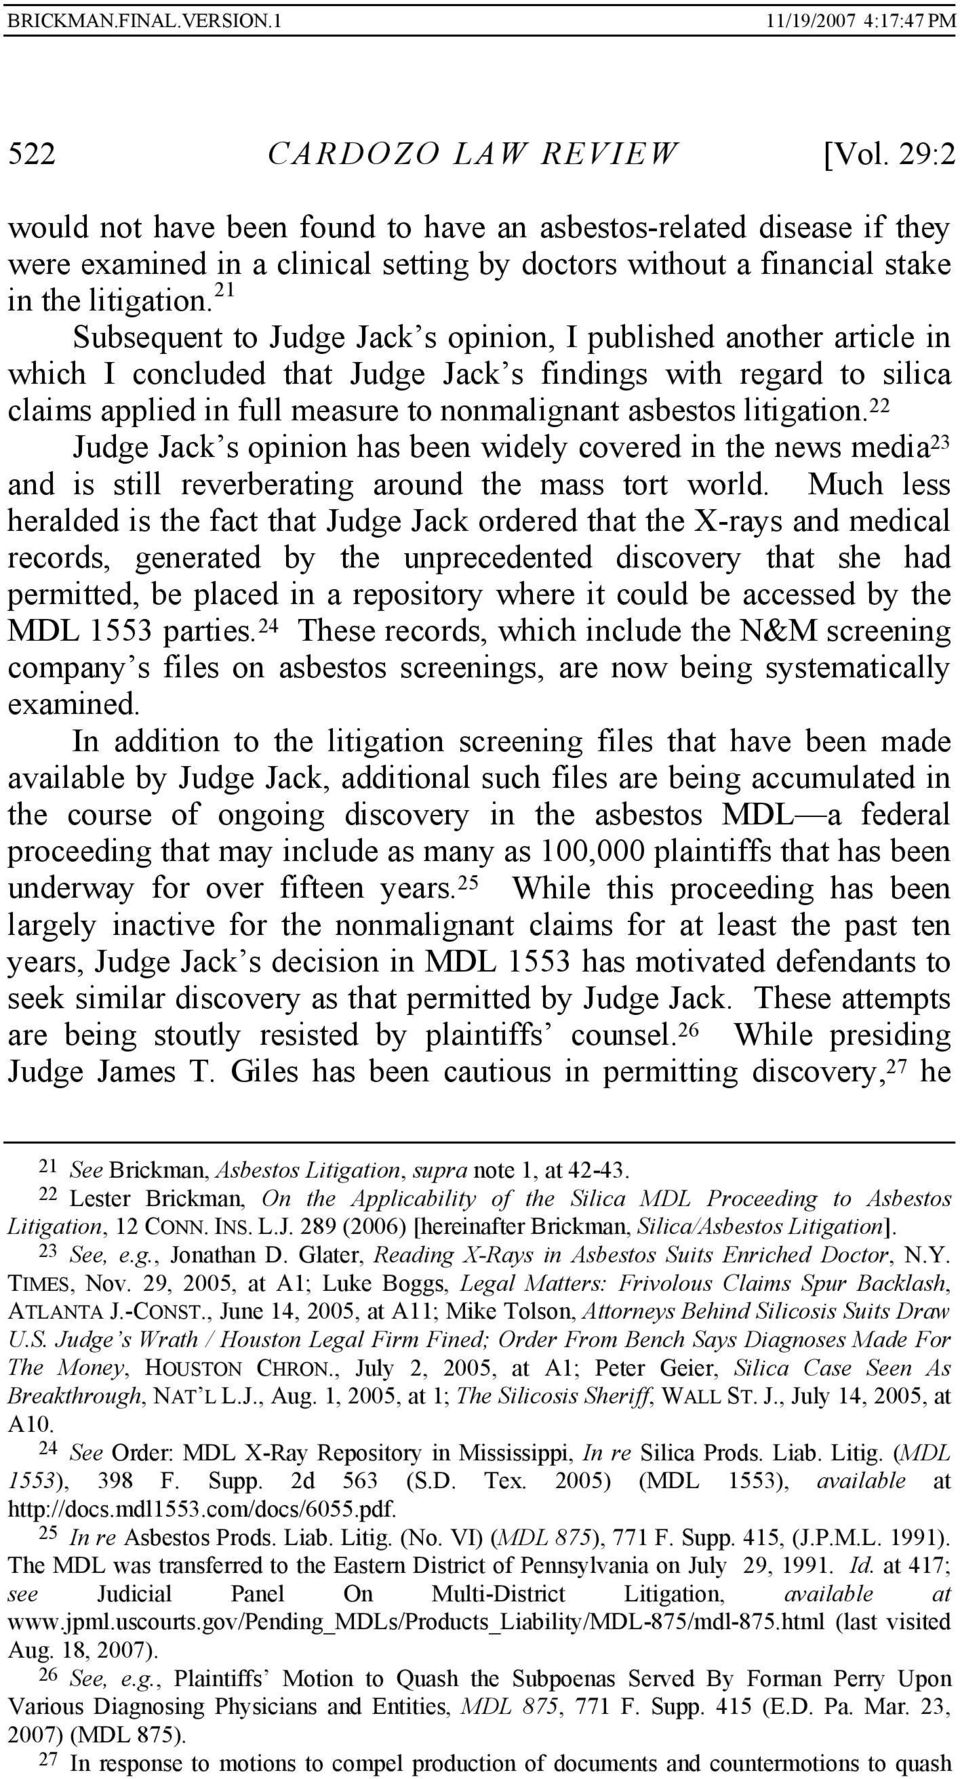 litigation. 22 Judge Jack s opinion has been widely covered in the news media 23 and is still reverberating around the mass tort world.